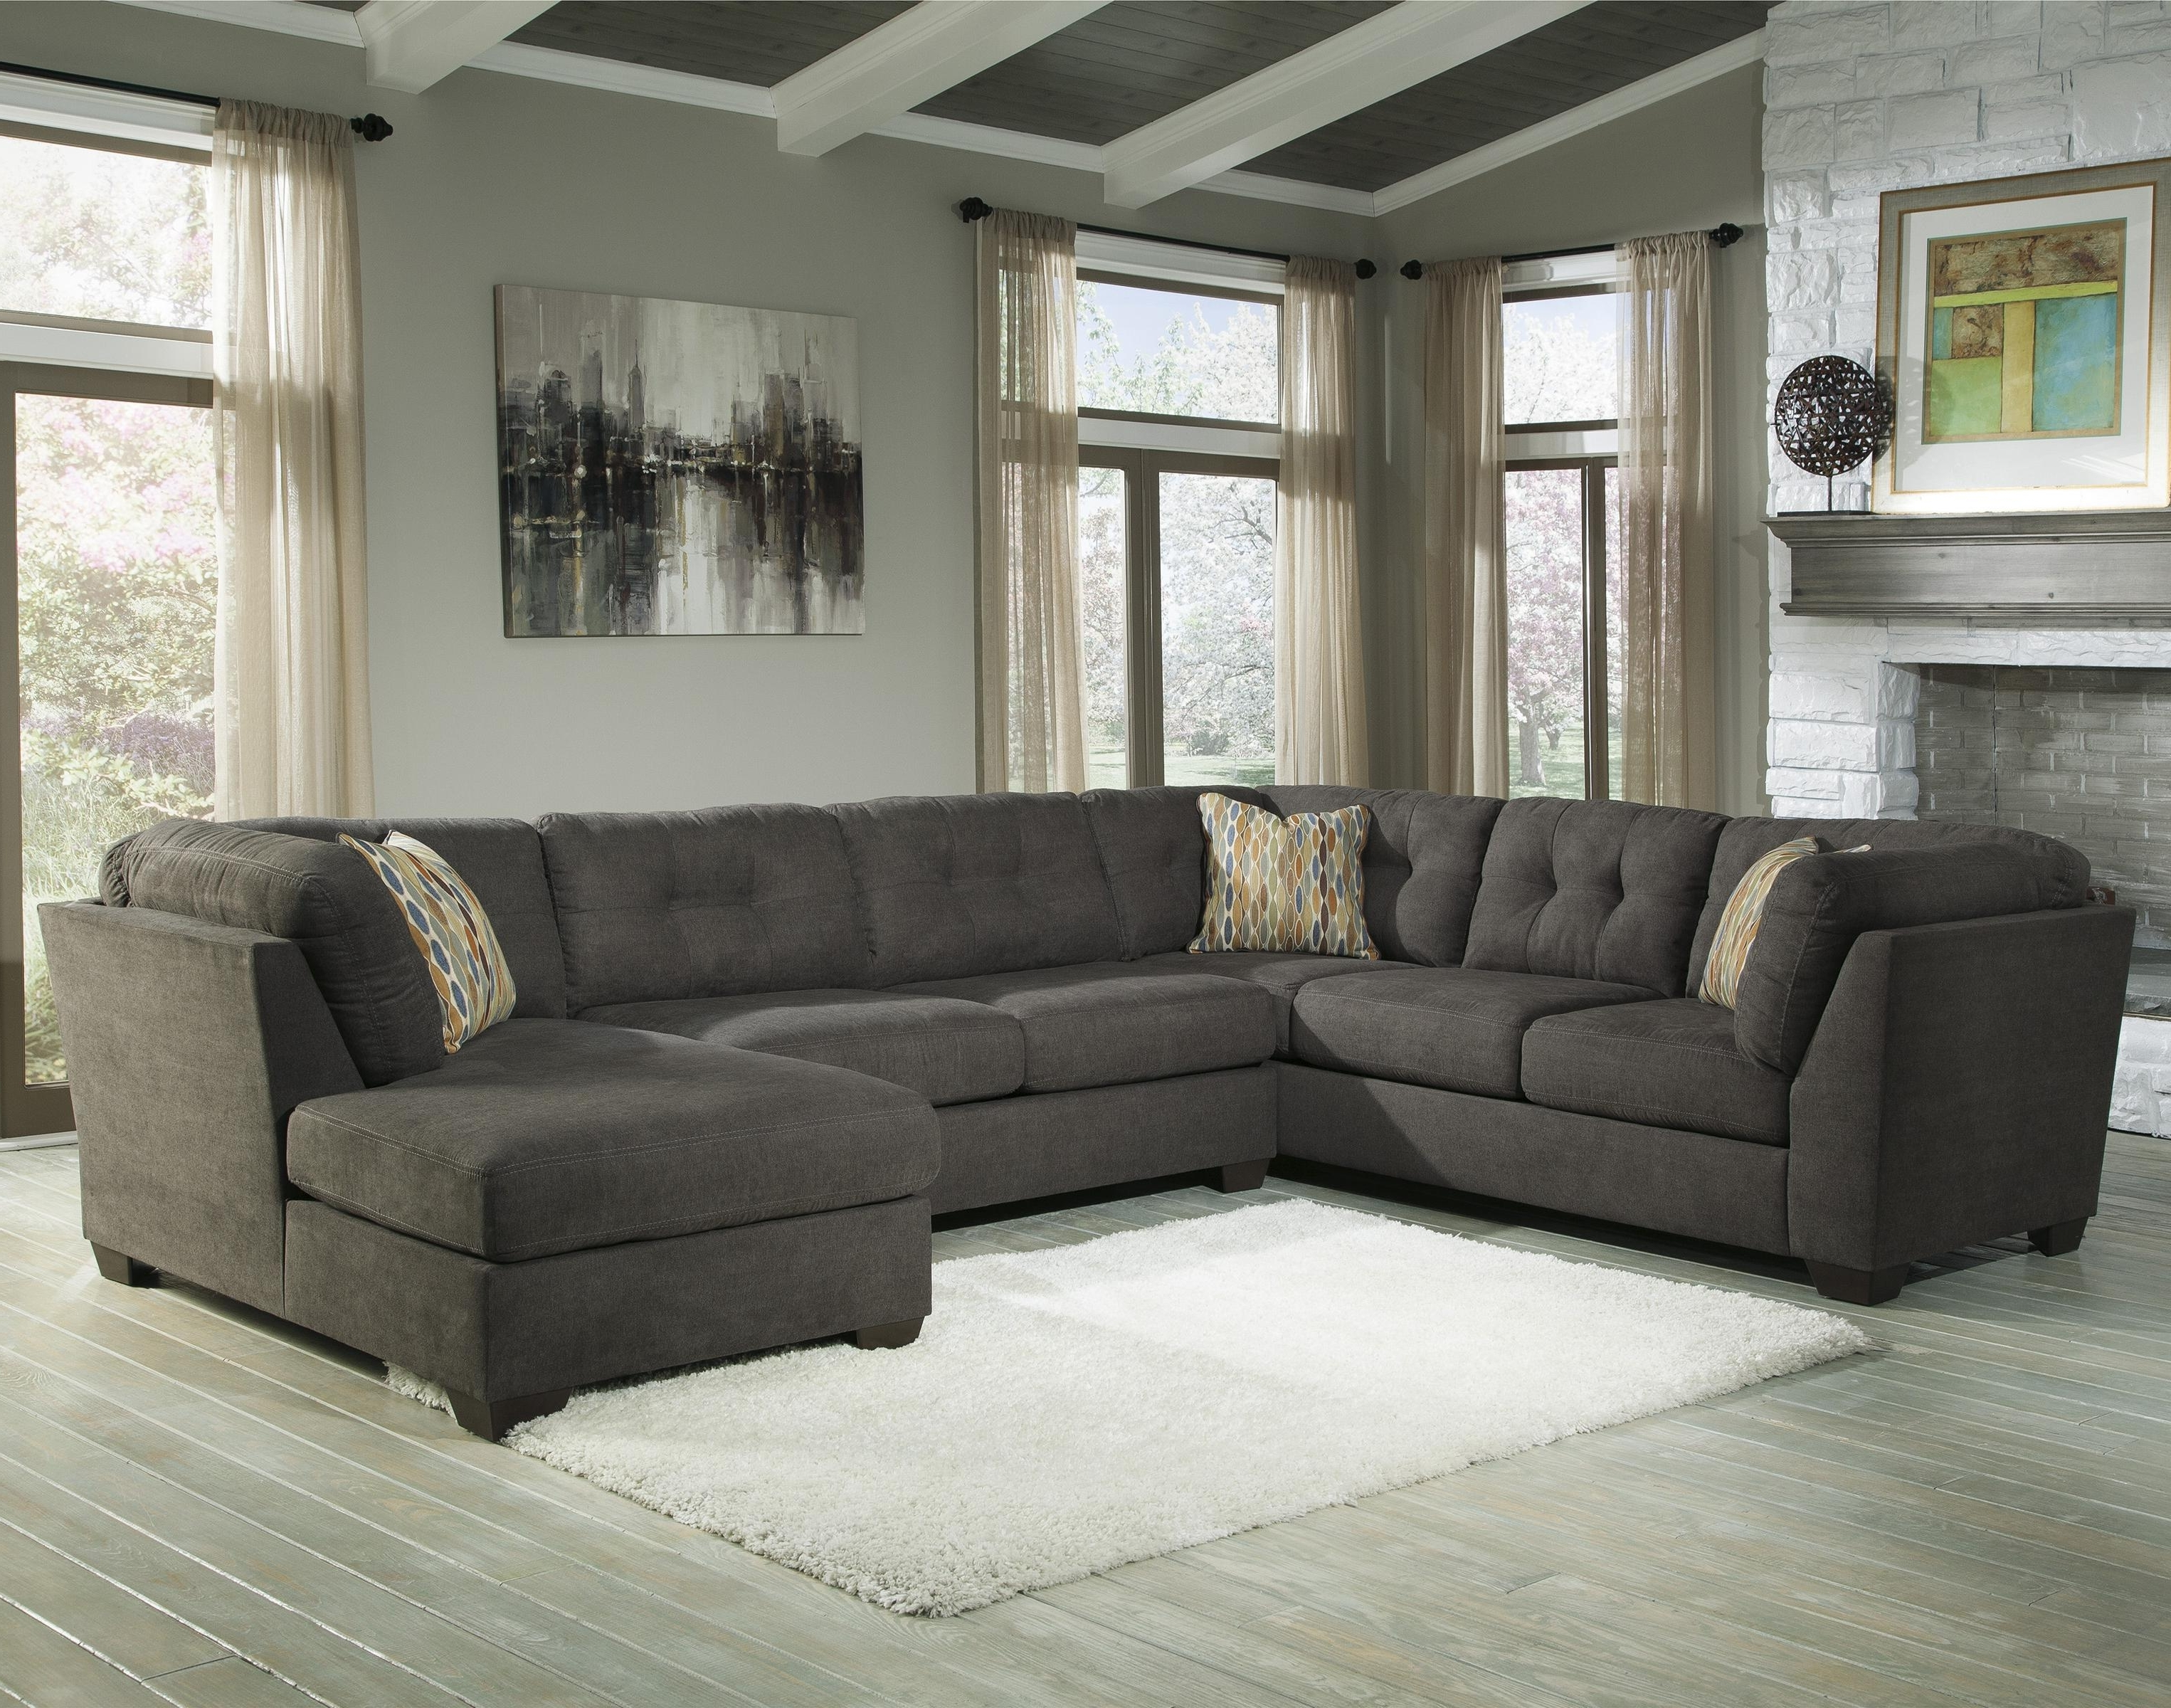 Awesome Gray Modular Sectional Sofa 97 In Jcpenney Sectional Sofa In Most Popular Jcpenney Sectional Sofas (View 7 of 15)